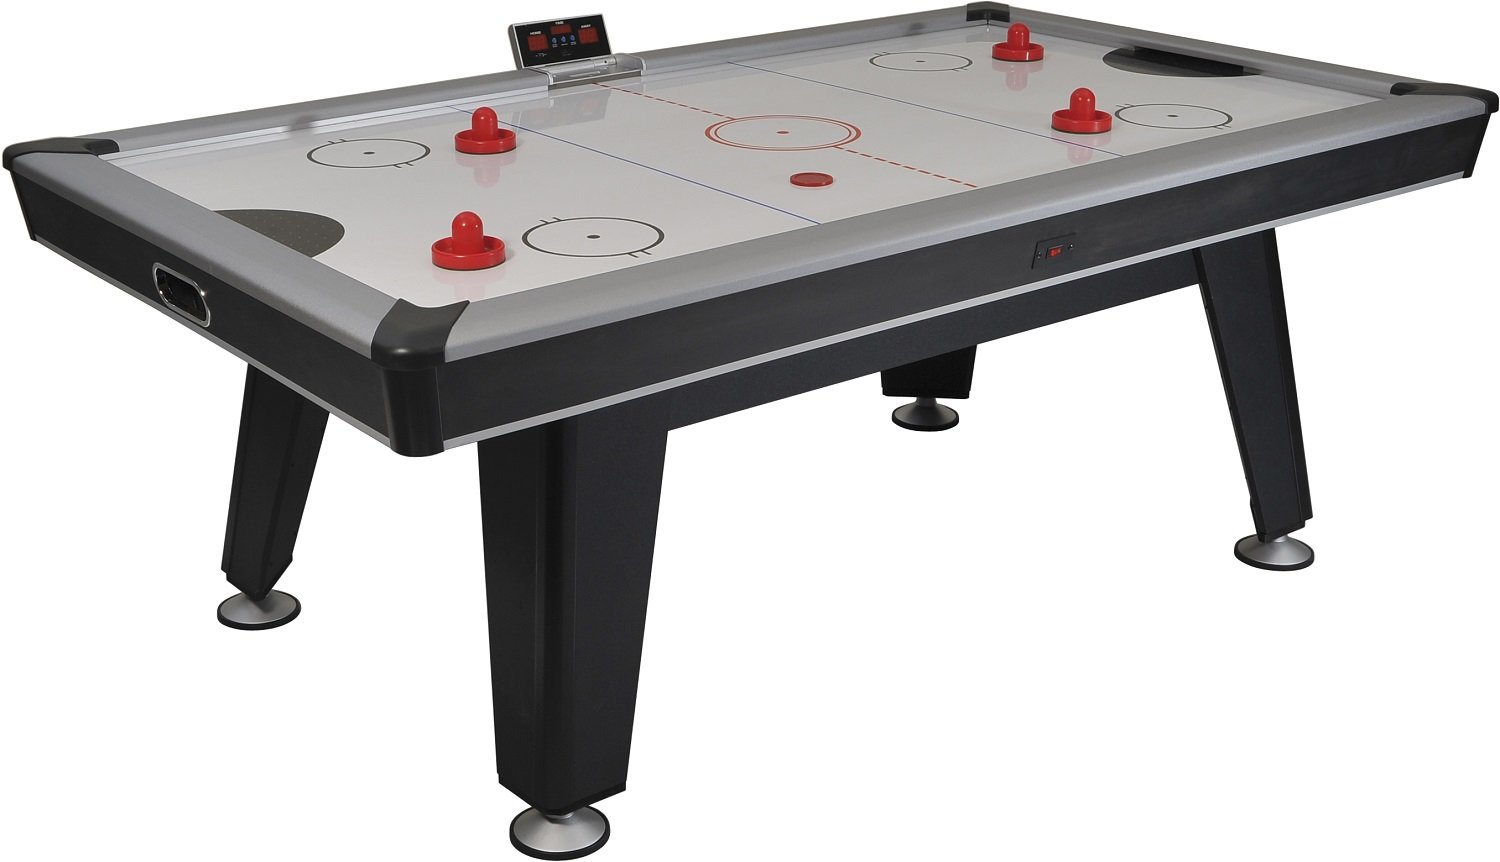 7 ft Buffalo Dominator Airhockeytisch 7 ft Buffalo Dominator Air Hockey Table, 6011.037